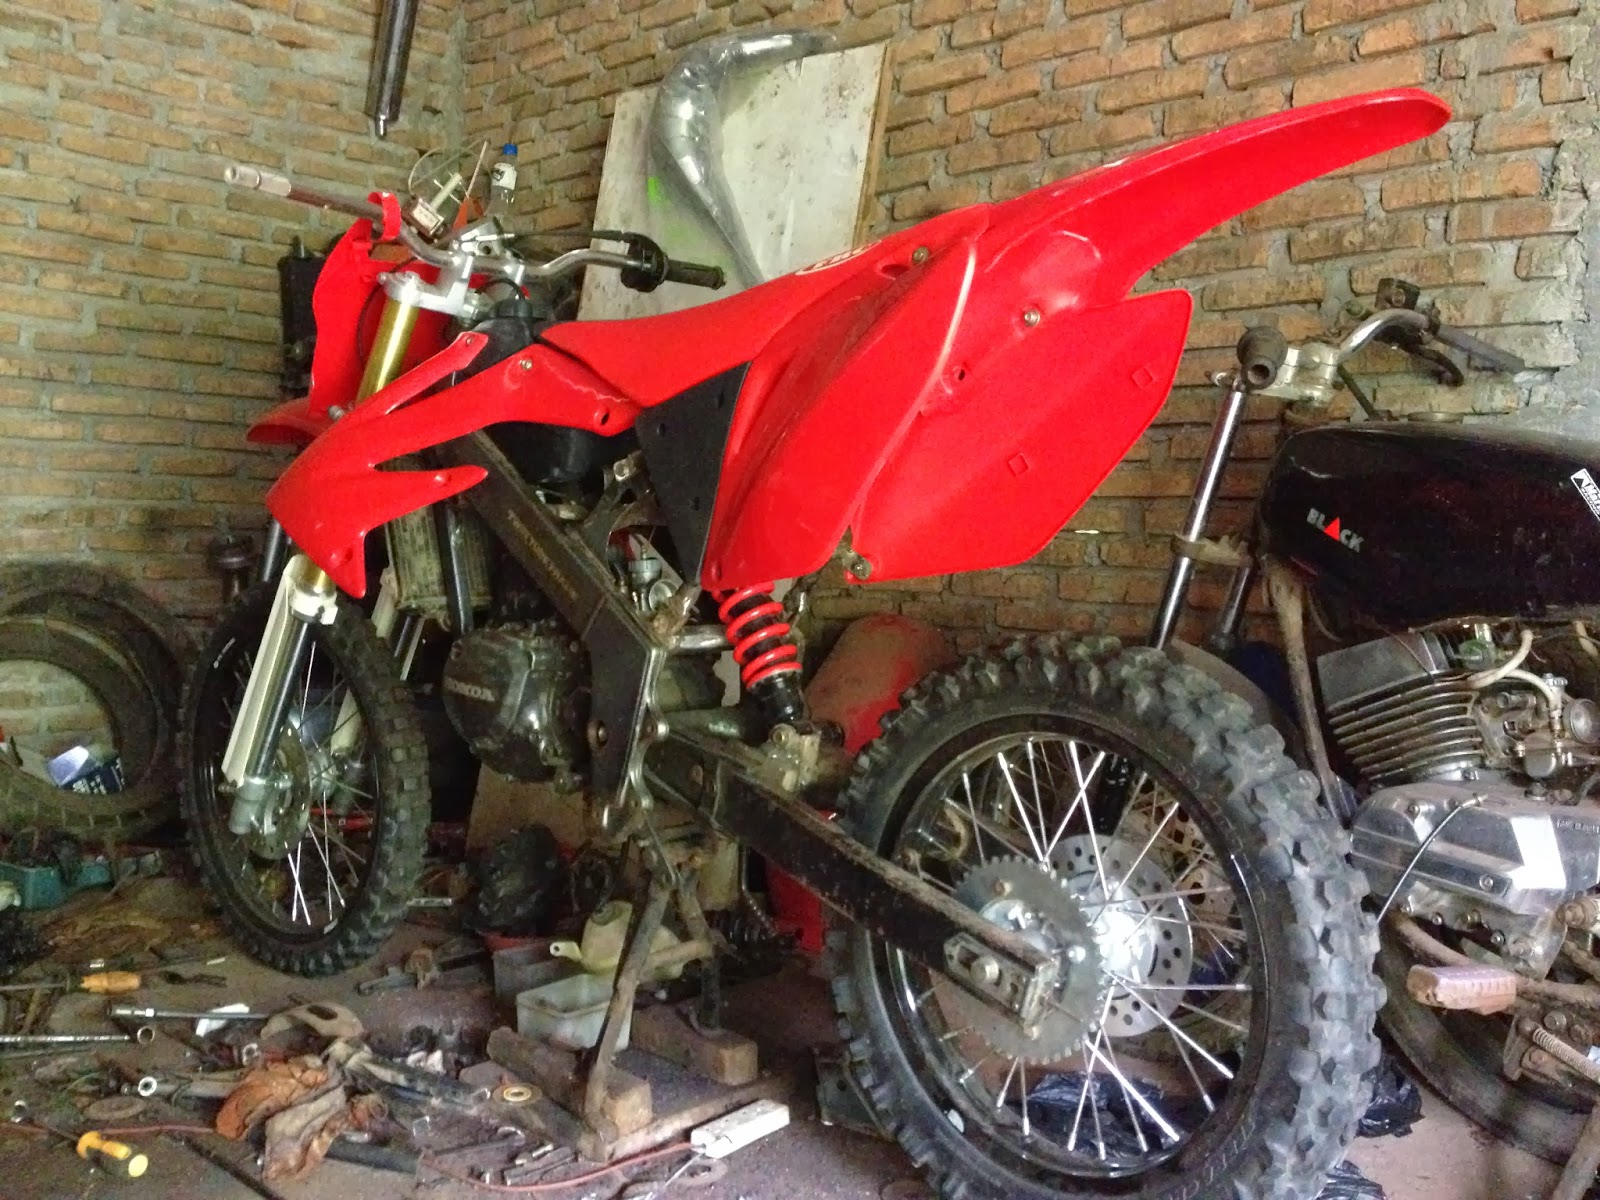 Download Ide 72 Modifikasi Motor Honda Crf 150 Terbaru Dan